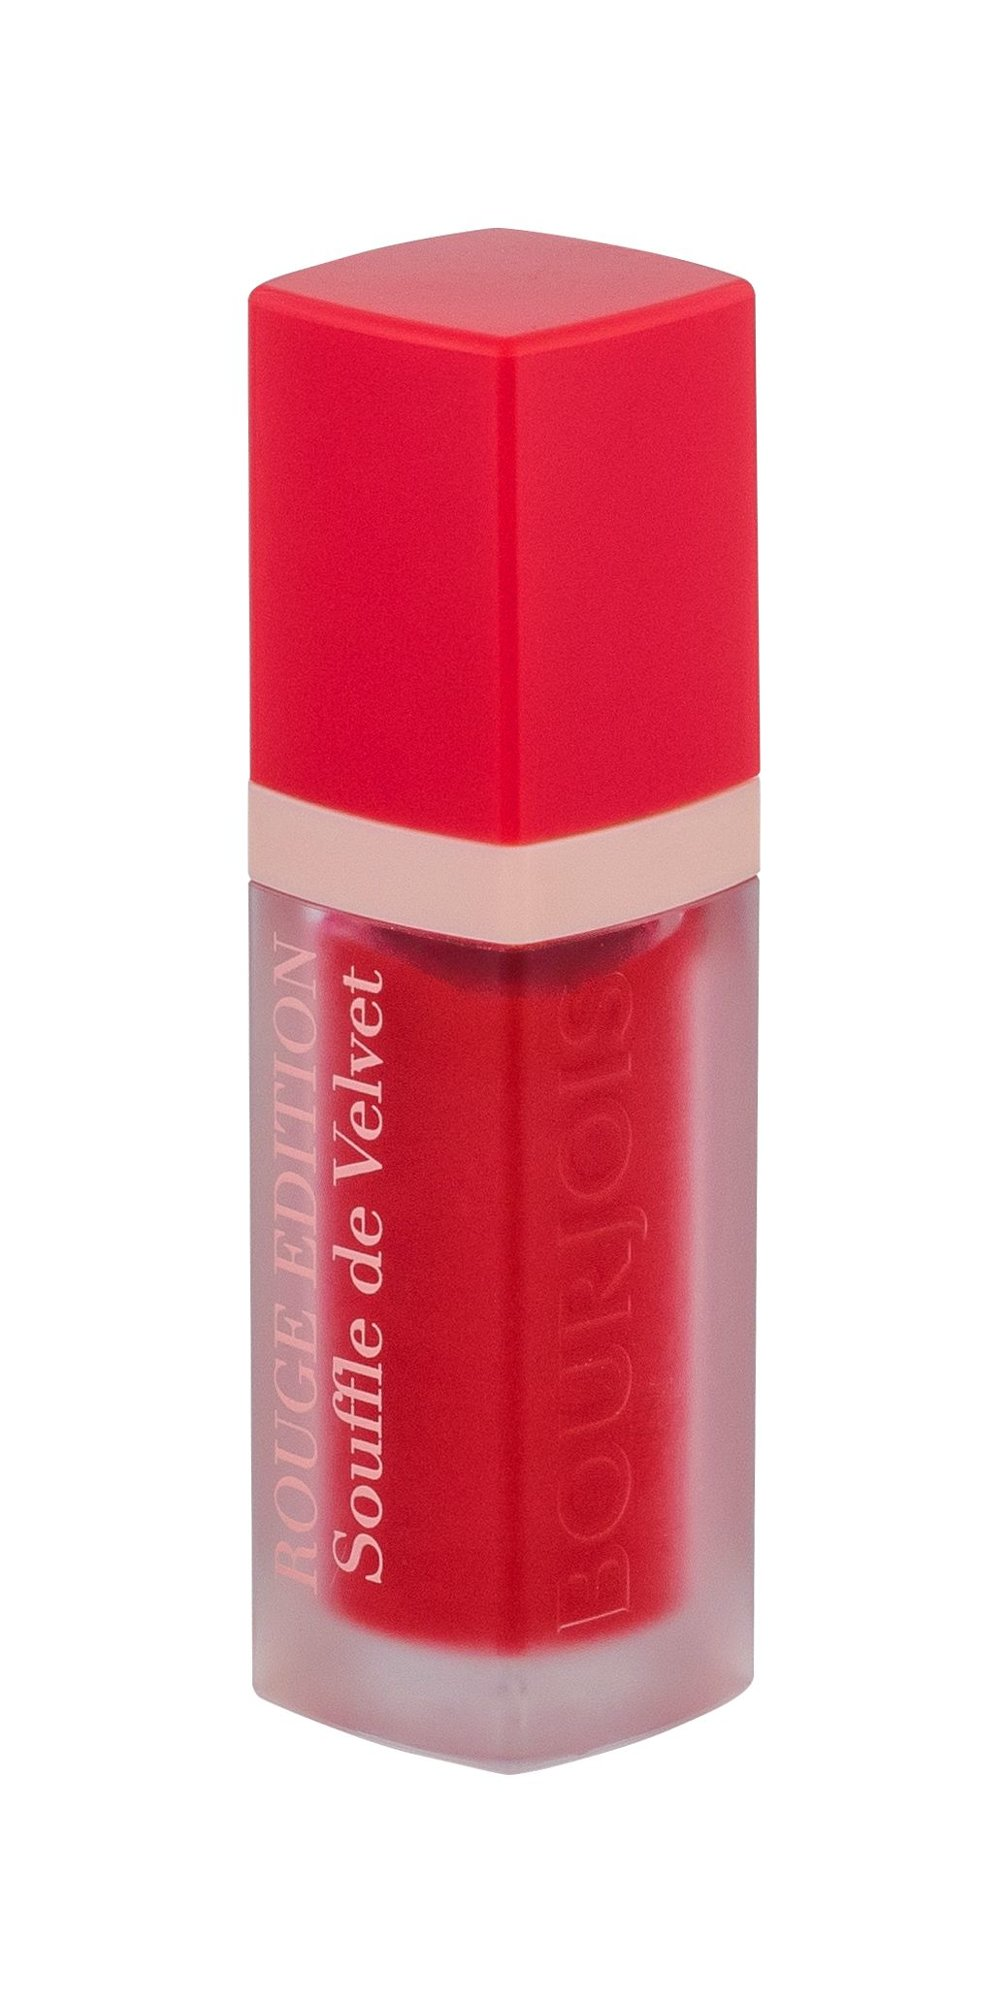 BOURJOIS Paris Rouge Edition Cosmetic 7,7ml 06 Cherry Leaders